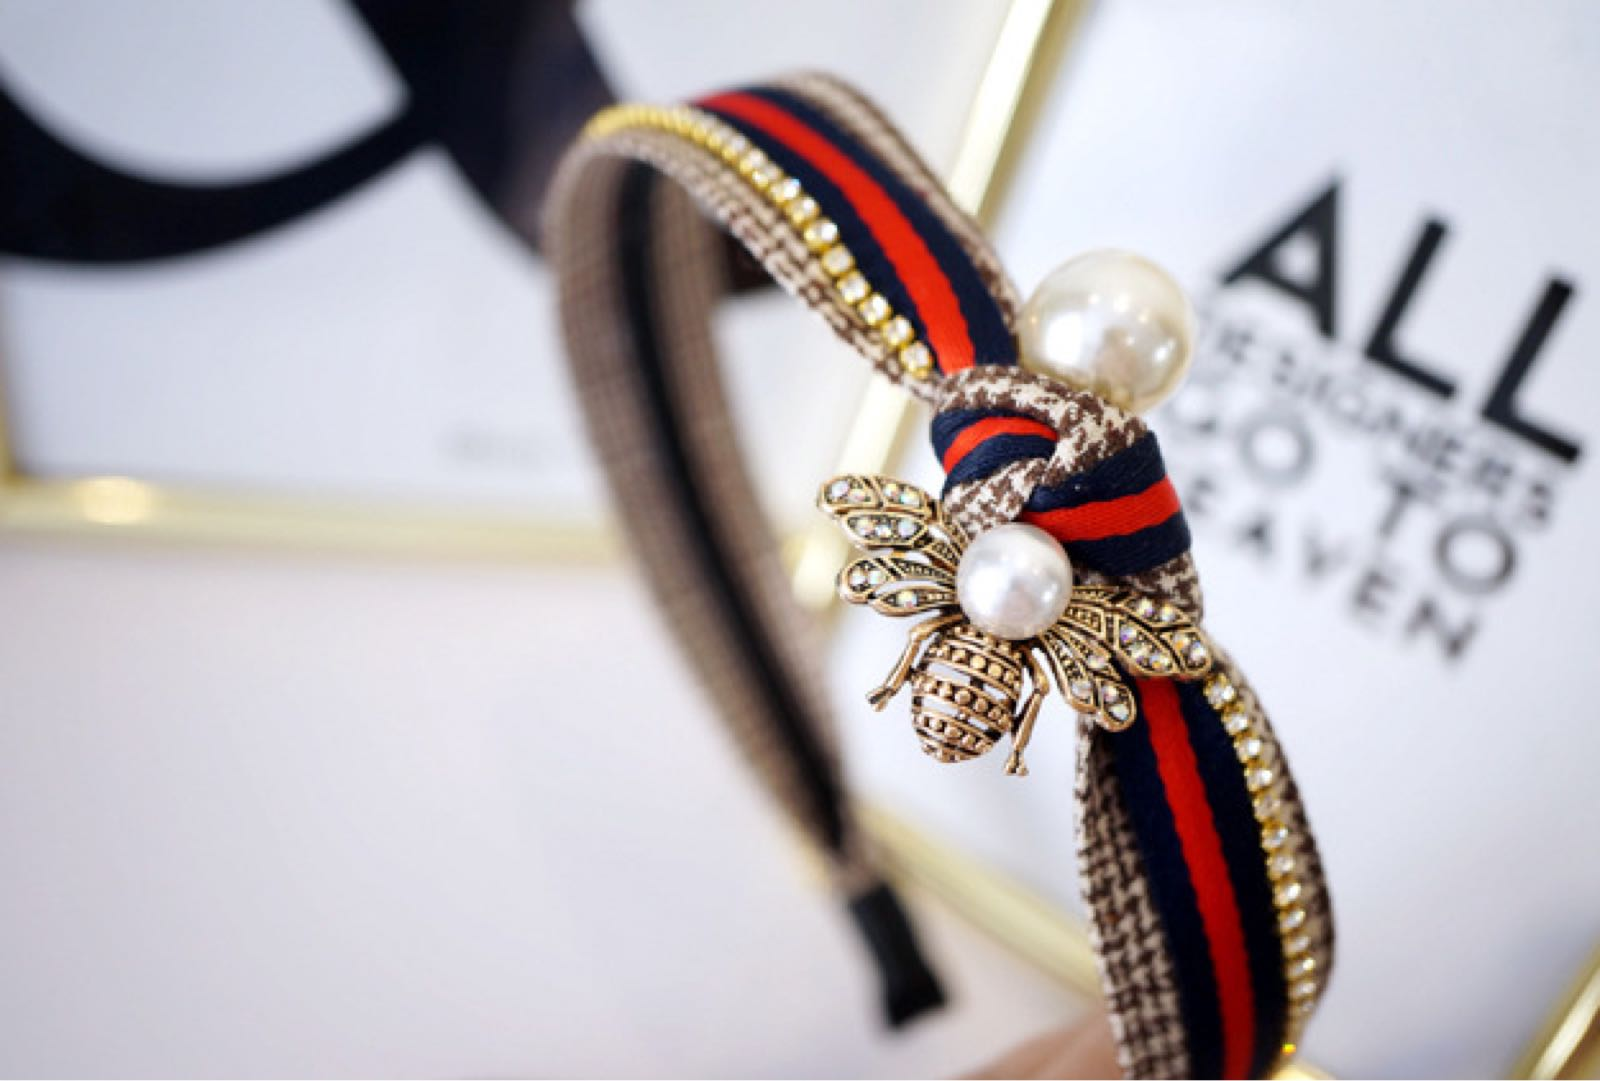 Designer inspired headband with crystal and Pearl detail and navy and red check ribbon